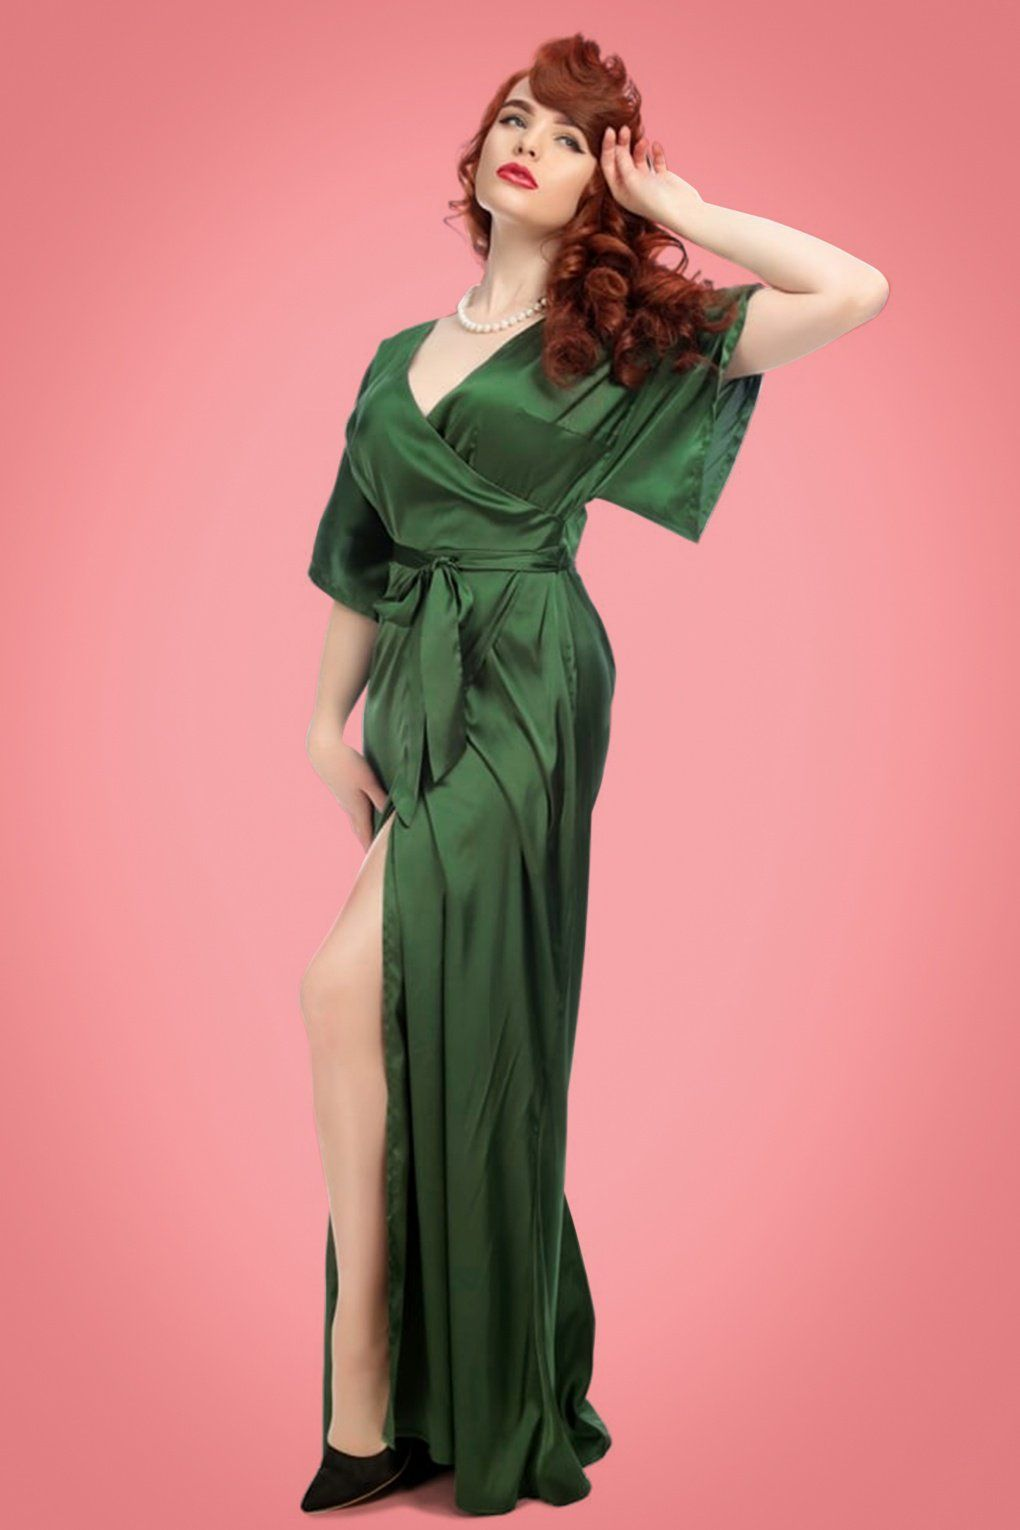 Vintage Style Dresses: 30s, 40s, 50s, and 60s | Vintage style ...